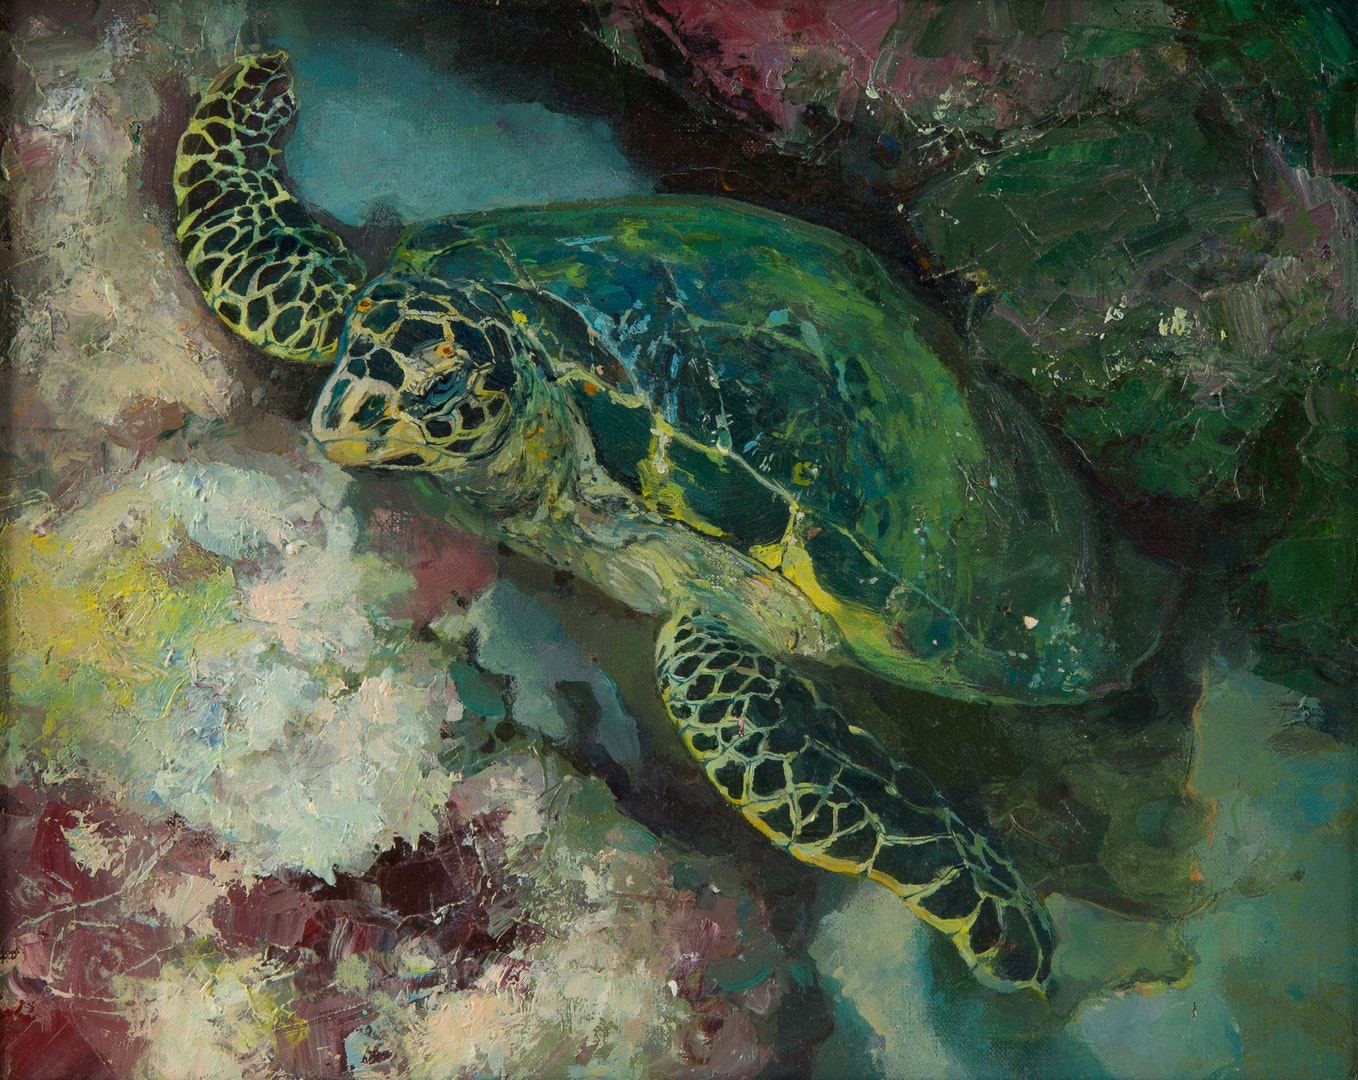 'Turtle of wisdom', Olga Smolentseva, Oil on canvas, 30 x 40 cm